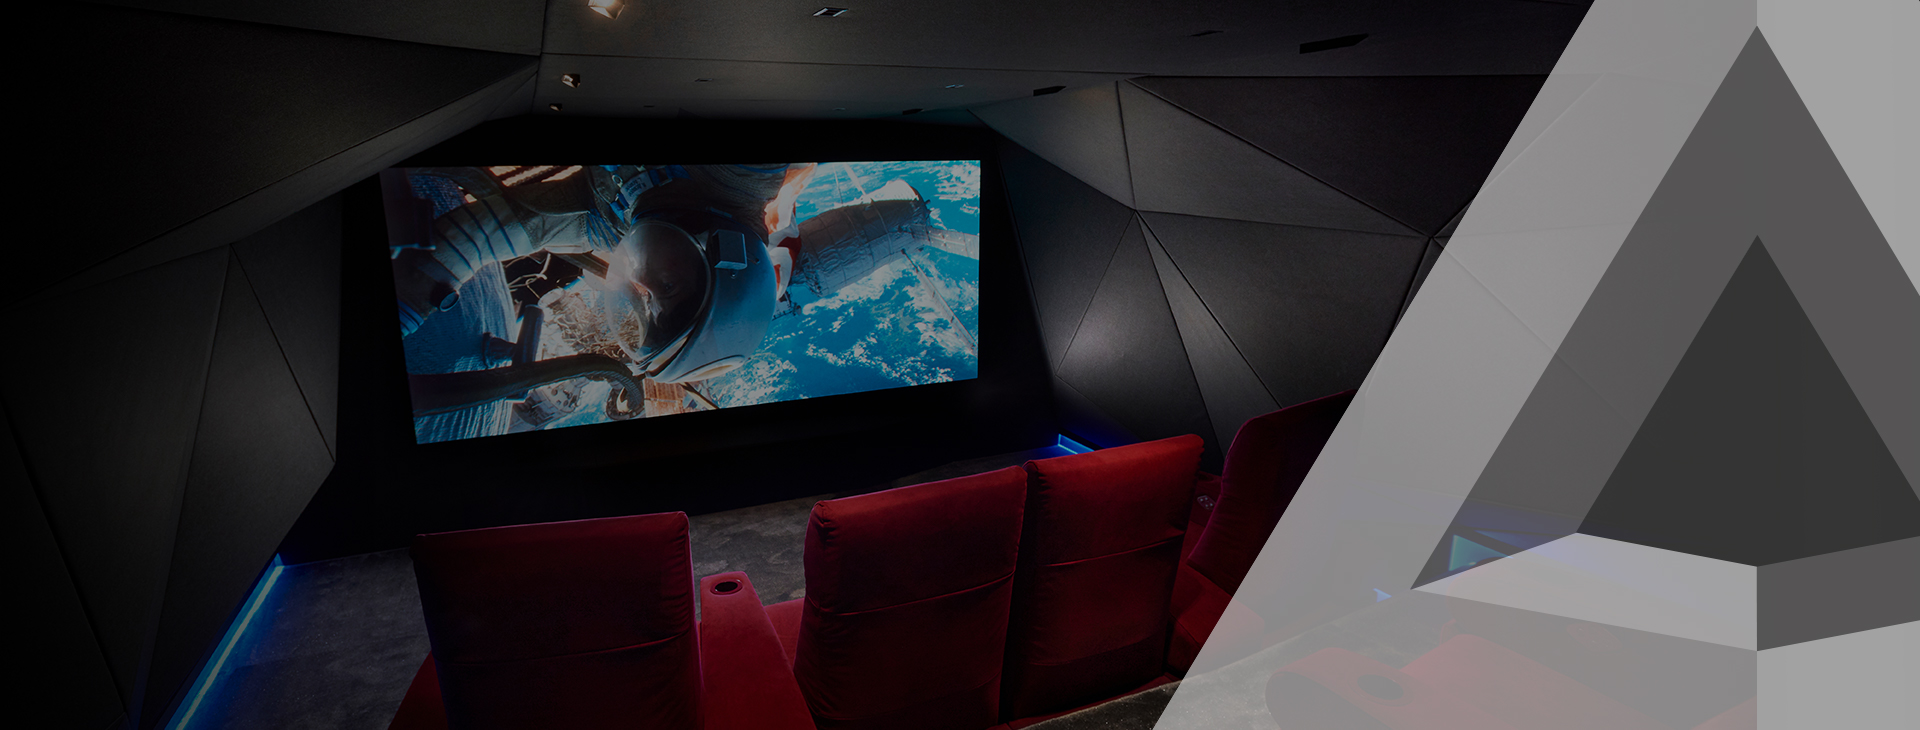 Cinema & Smart Home Gallery